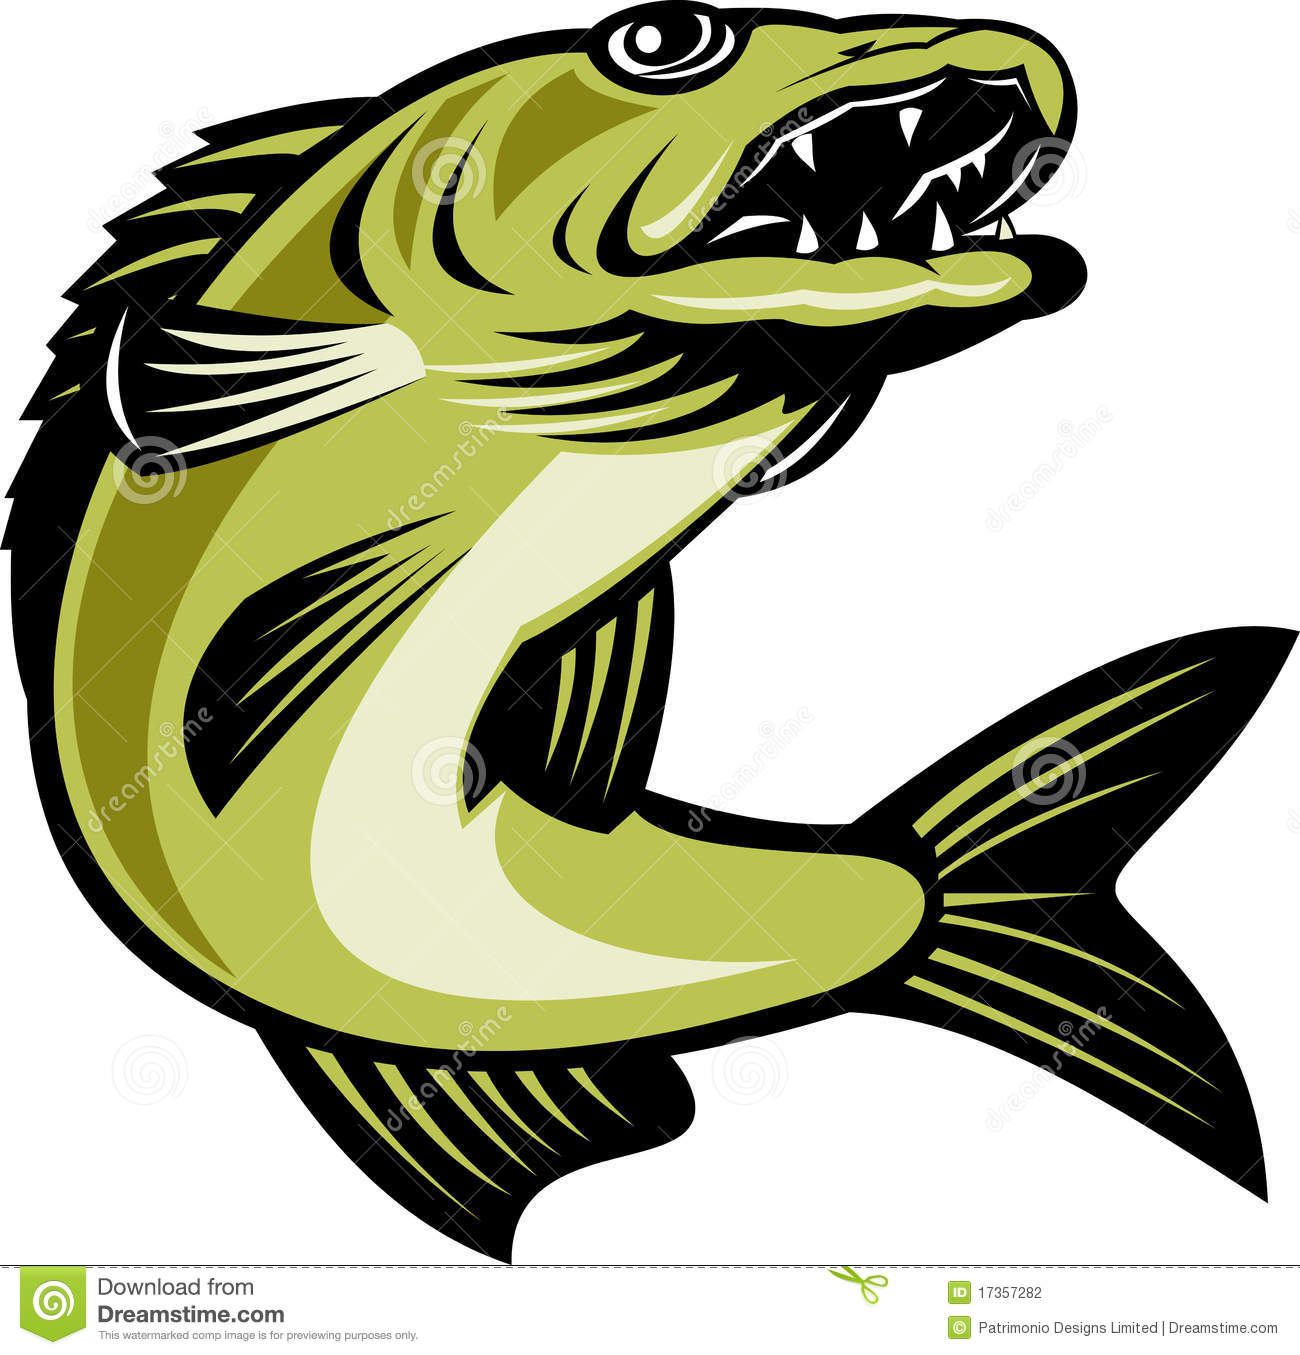 Retro Illustration Of A Walleye Fish Jumping Isolated On White